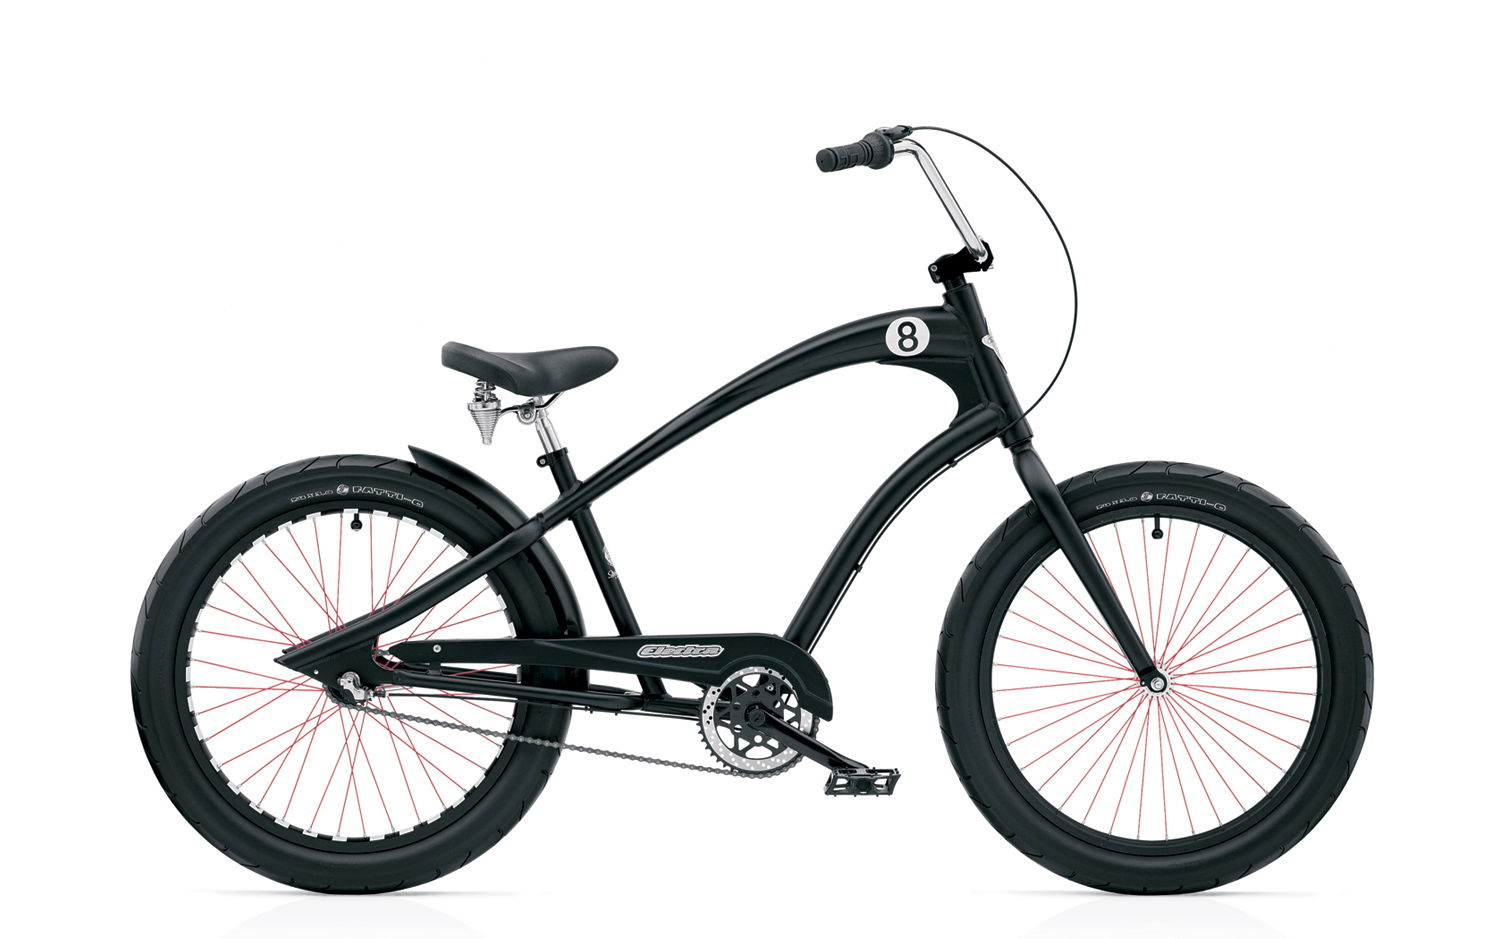 Electra Cruiser Straight 8 Bike